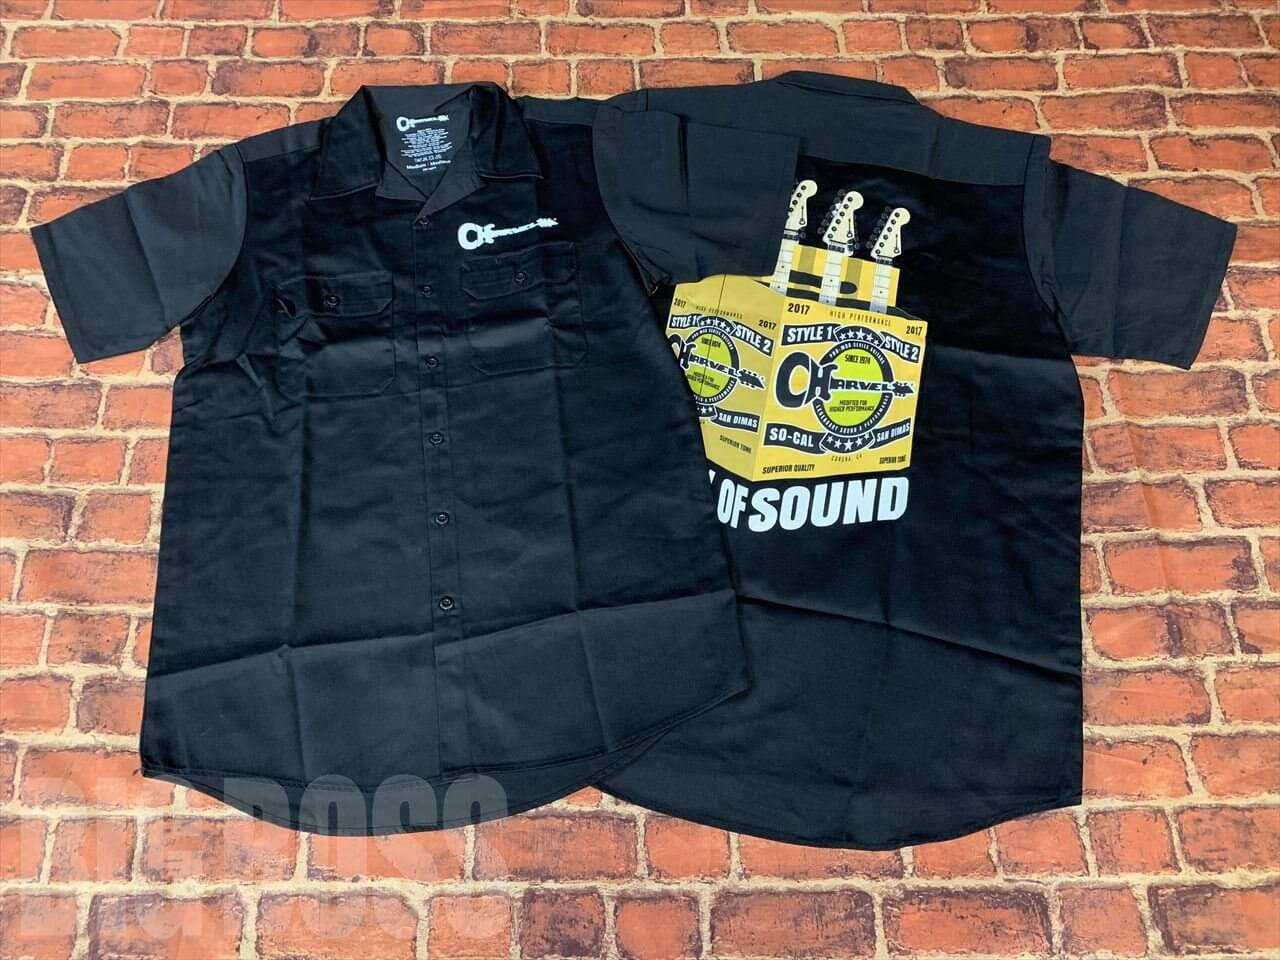 CHARVEL®(シャーベル) 6 PACK OF SOUND WORK SHIRT / Black (ワークシャツ)